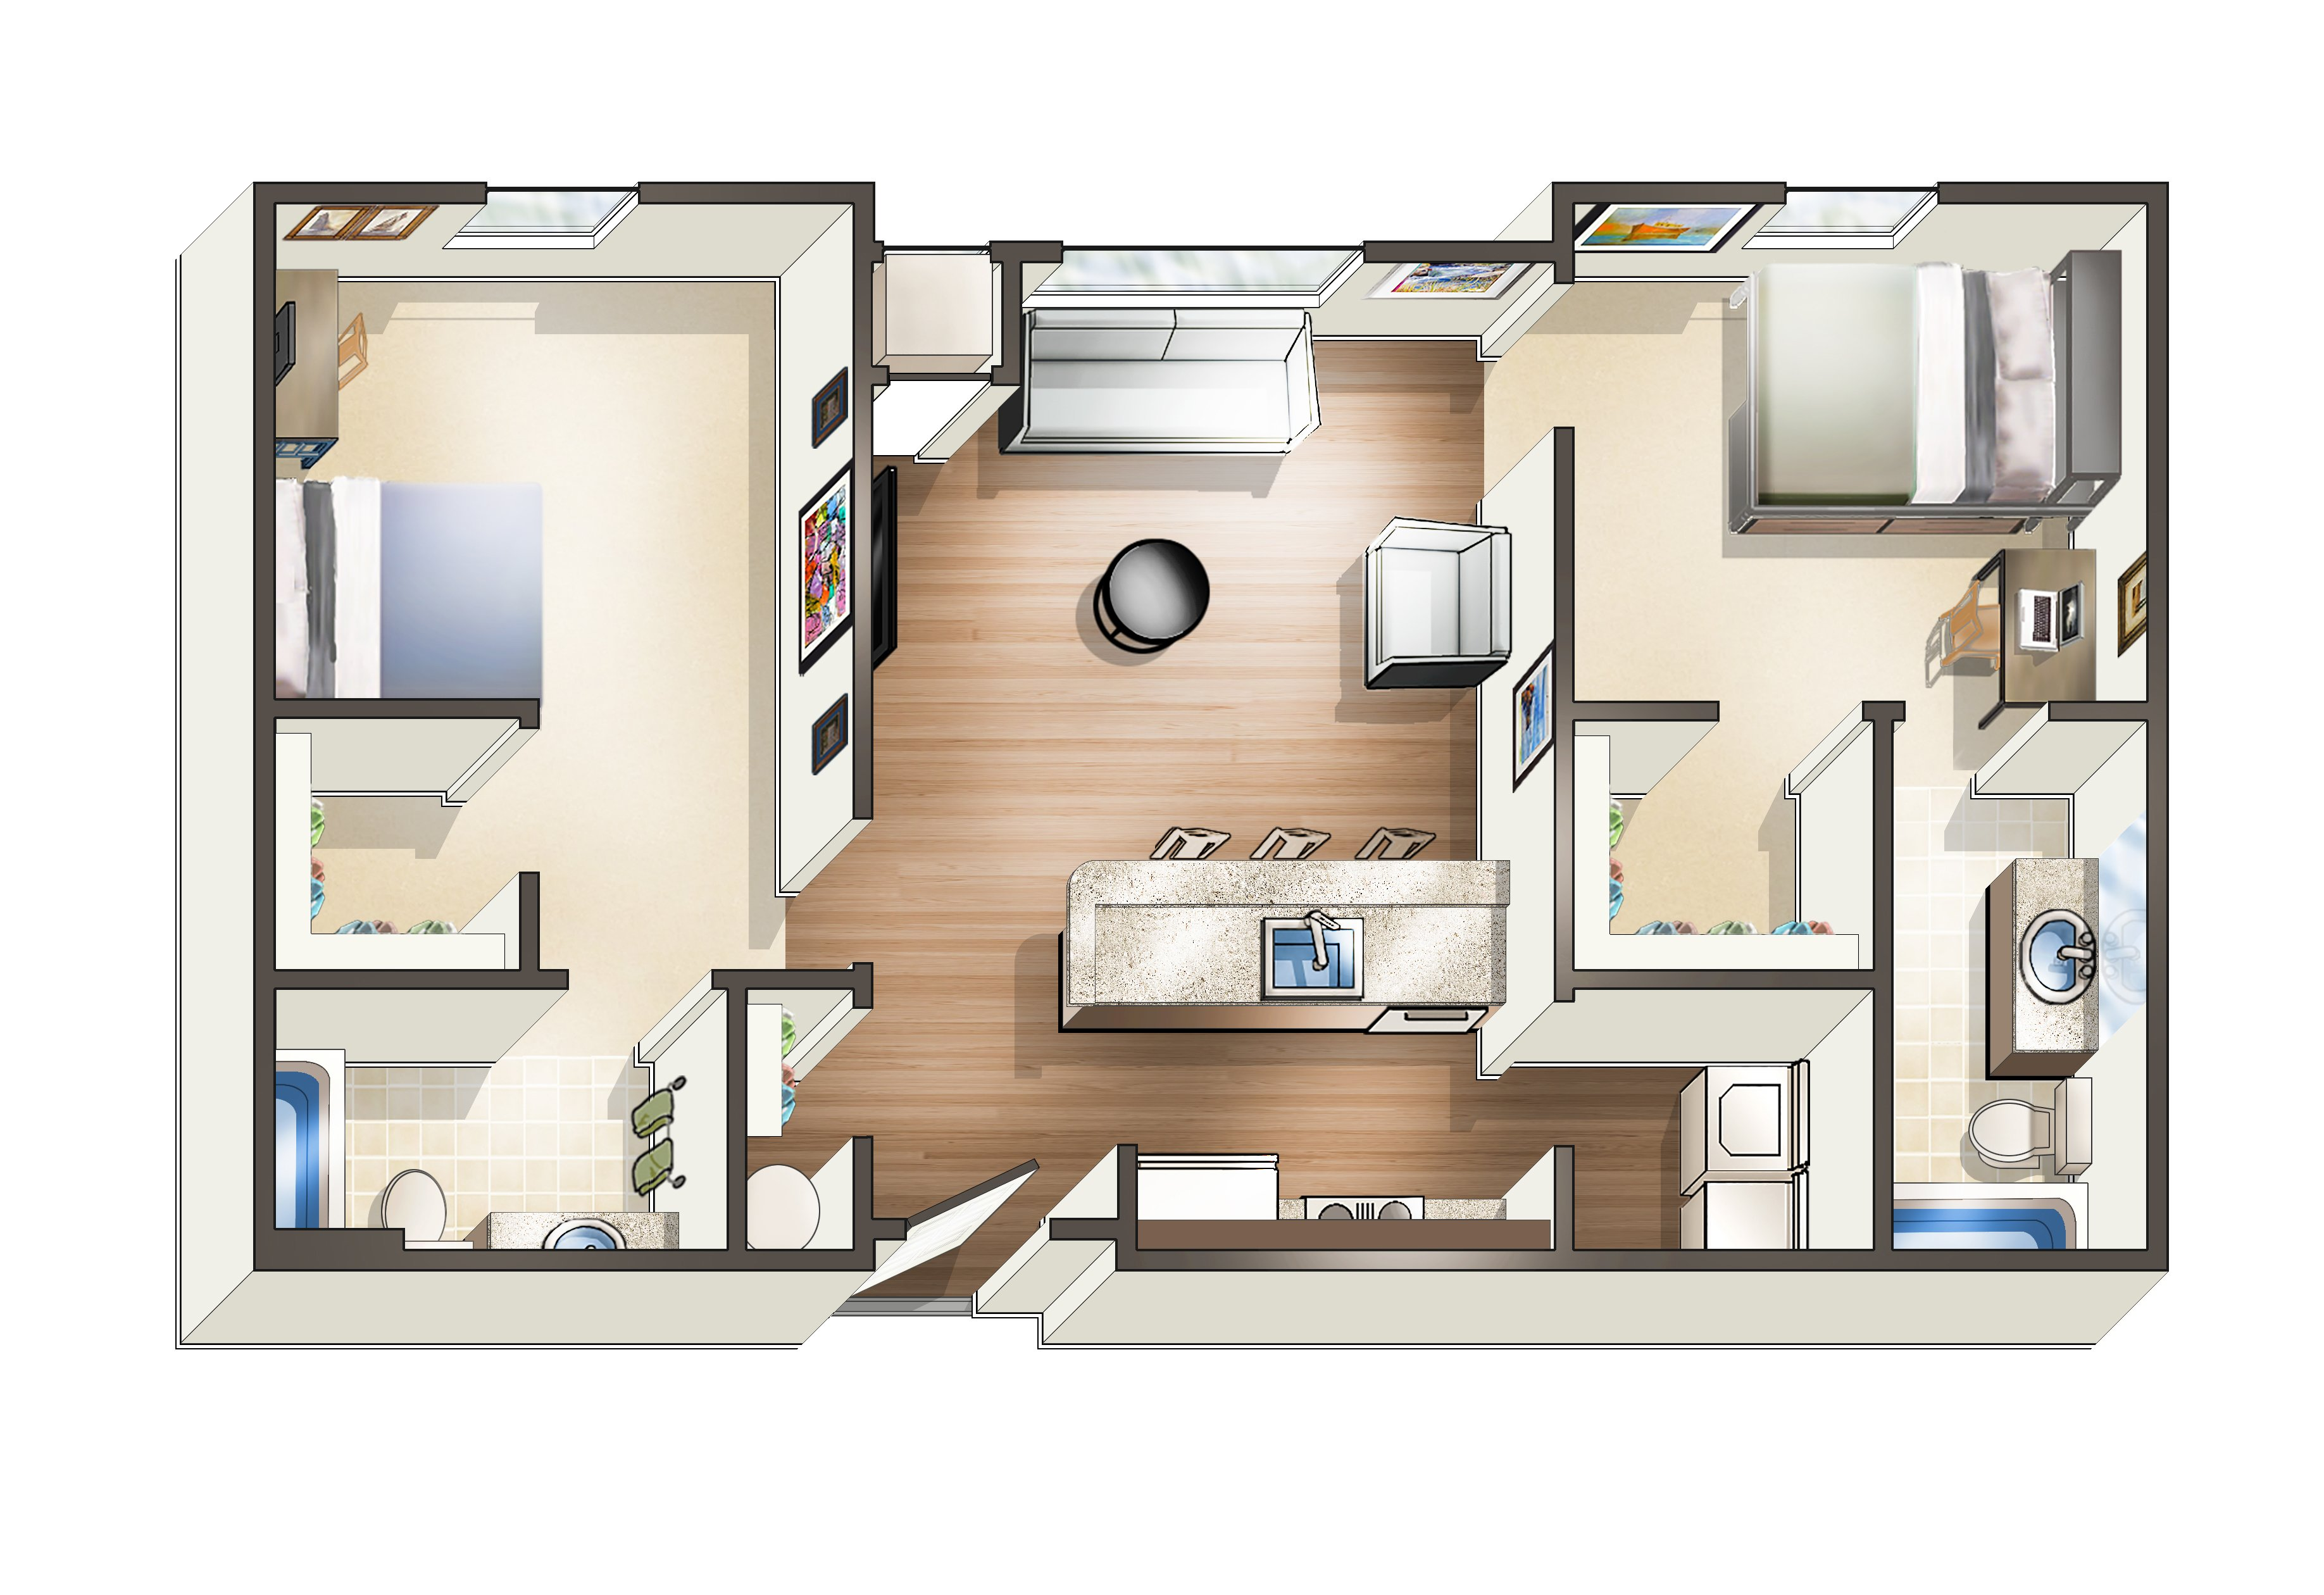 Two Bedroom Loft Floor Plans Modern Off Campus Student Apartments Near Uwf The Next